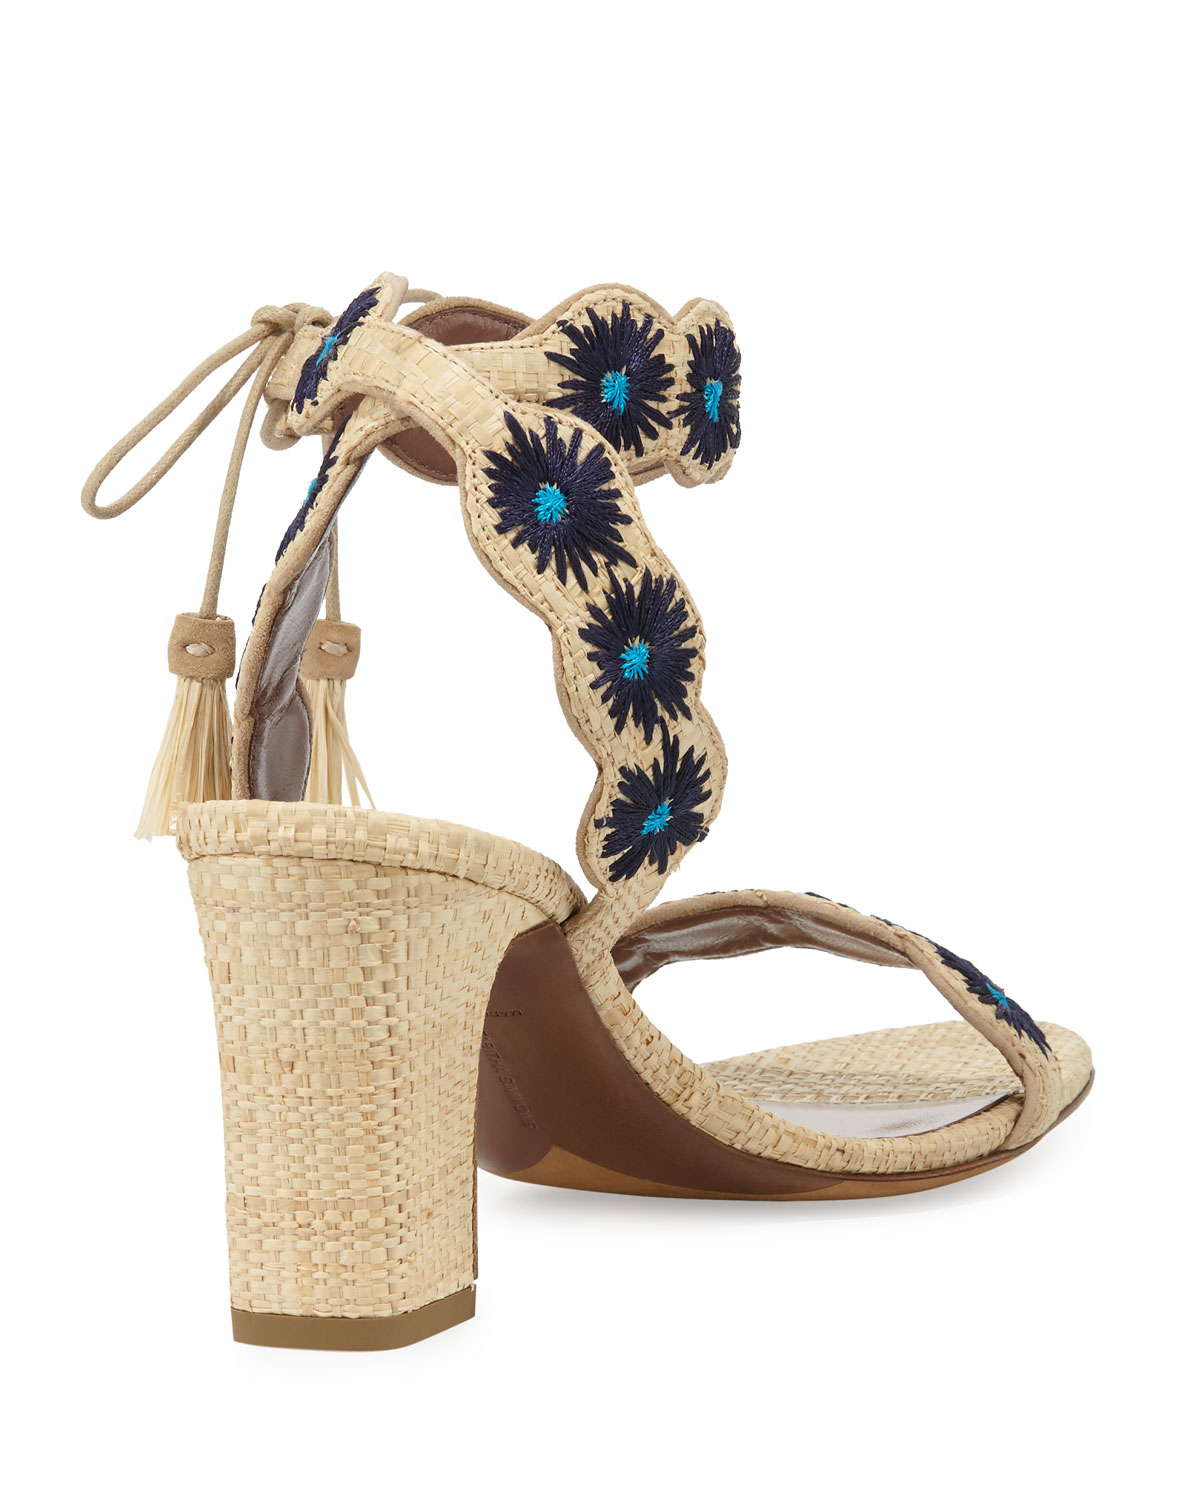 release dates cheap online Tabitha Simmons Raffia Embroidered Sandals explore cheap price sale finishline eyAxm6hY